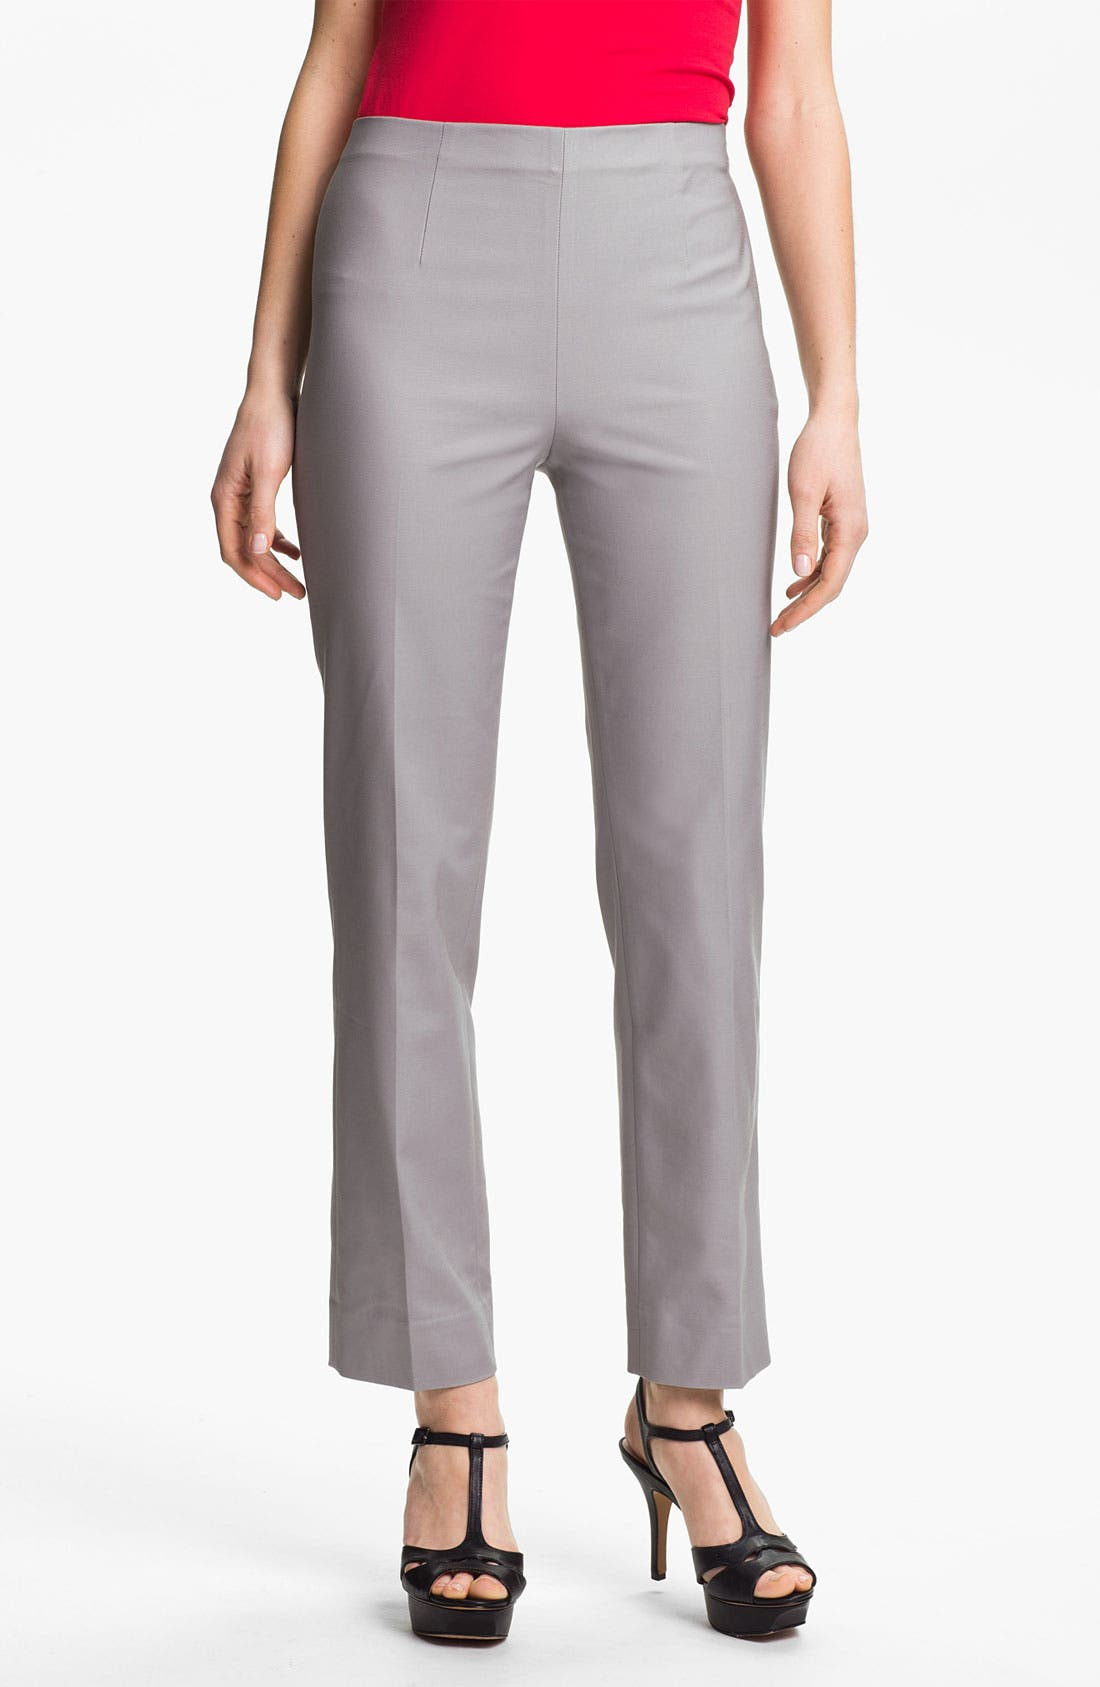 Alternate Image 1 Selected - Nic + Zoe 'Perfect' Ankle Pants (Petite)